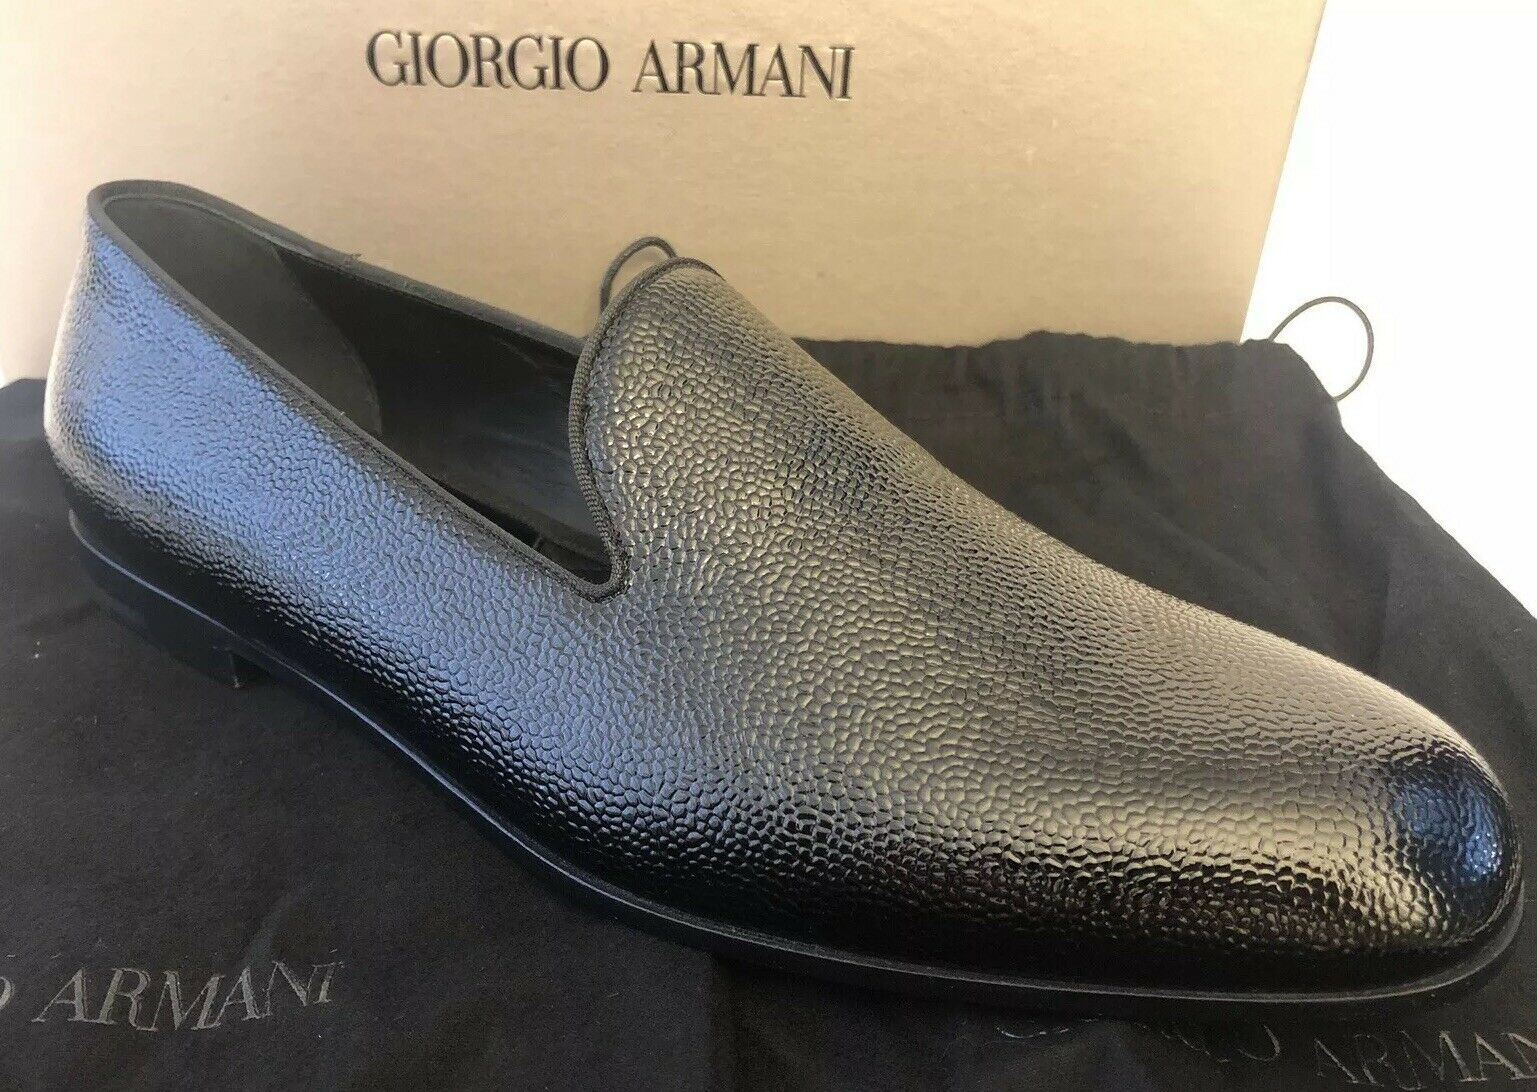 NIB $795 Giorgio Armani Leather Mens Textured Patent Slipper Shoes 13 US X2J007